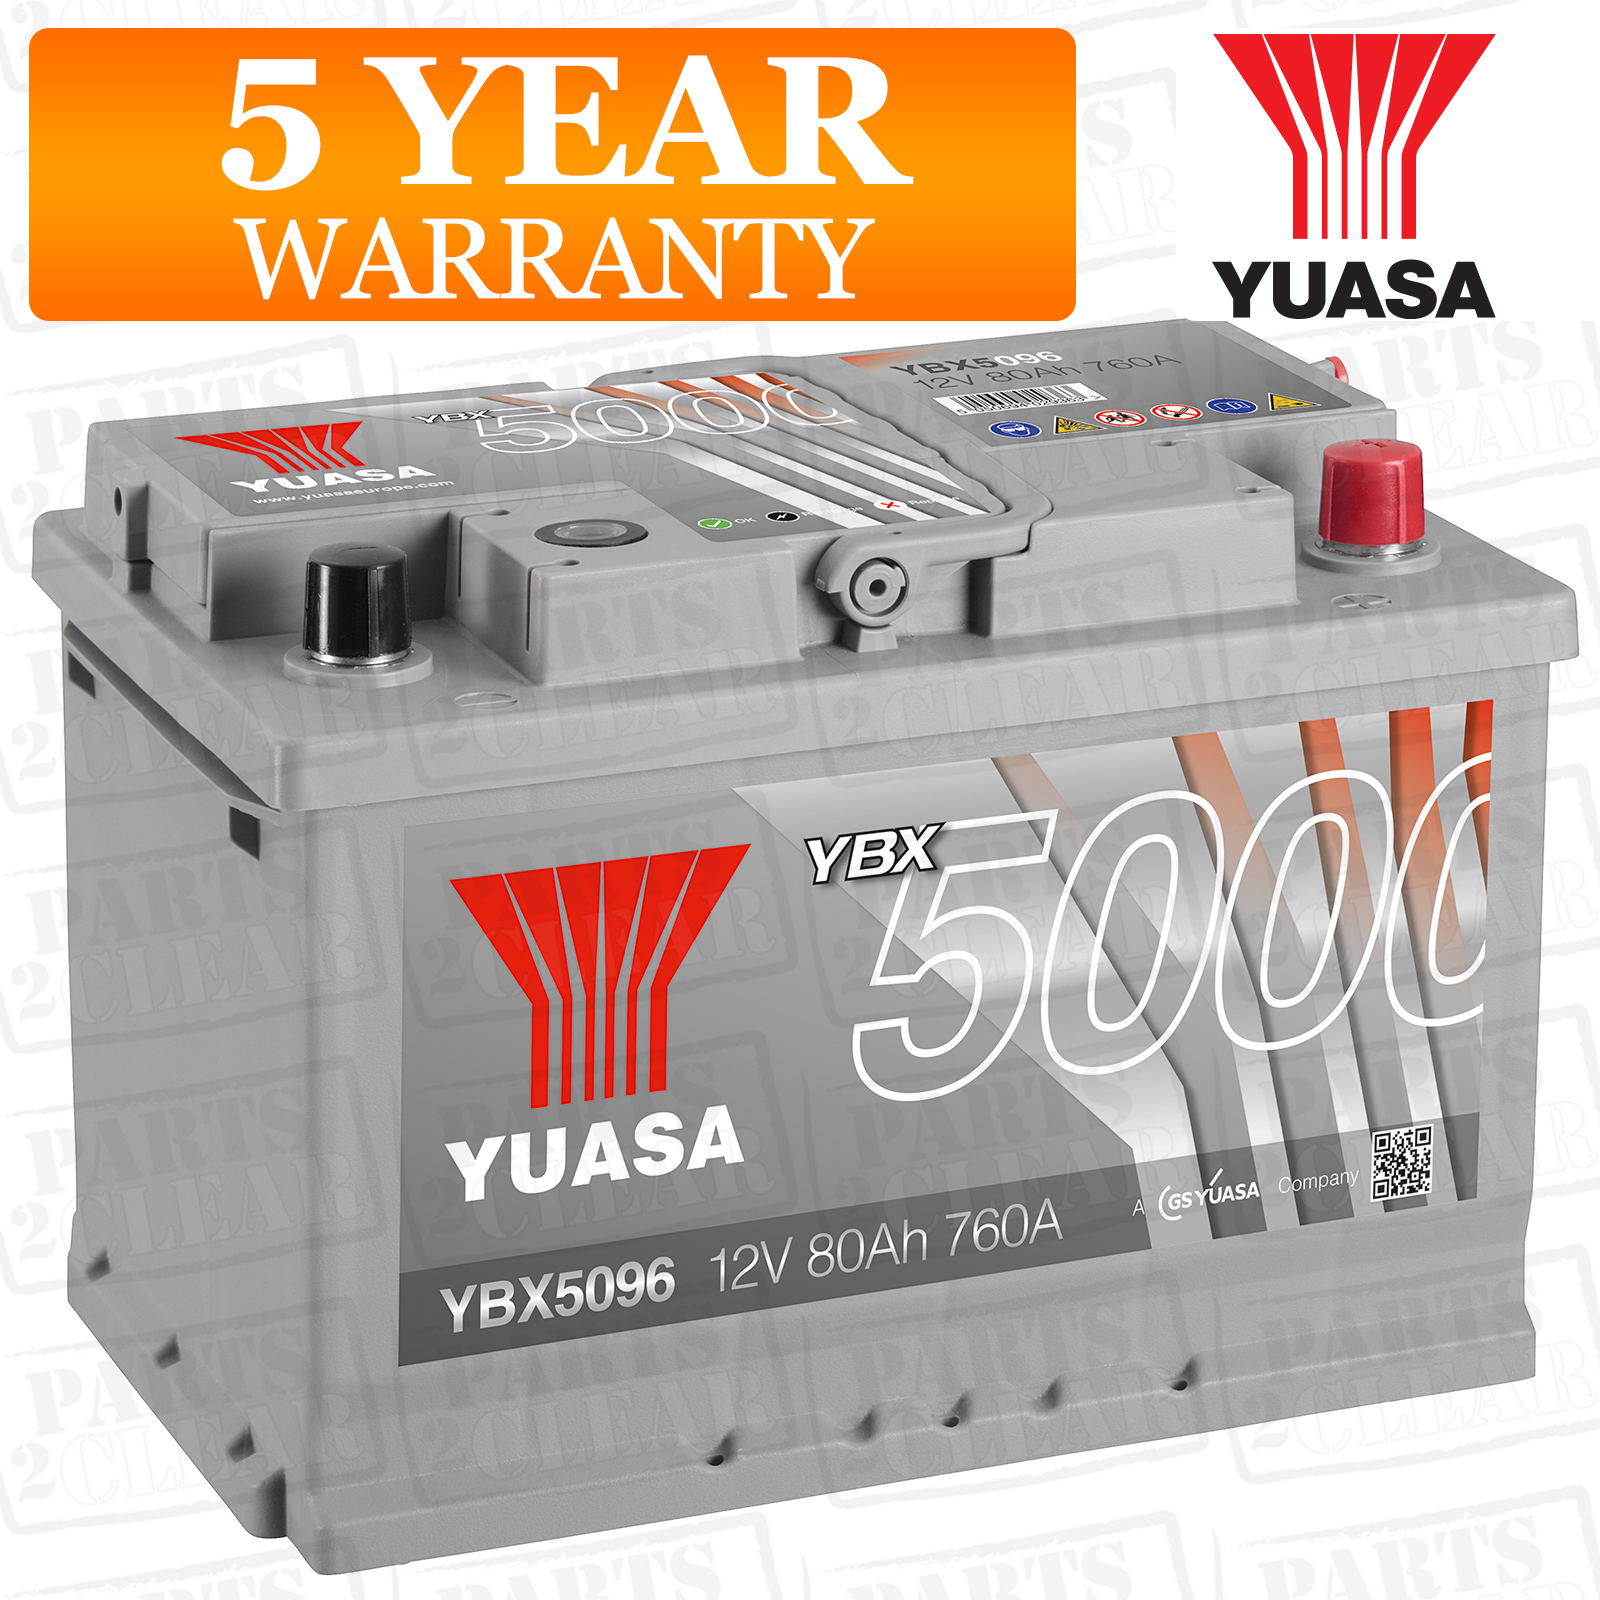 Yuasa Car Battery 760cca Replacement Spare Part For Vw Golf Plus Mk5 1 9 Tdi